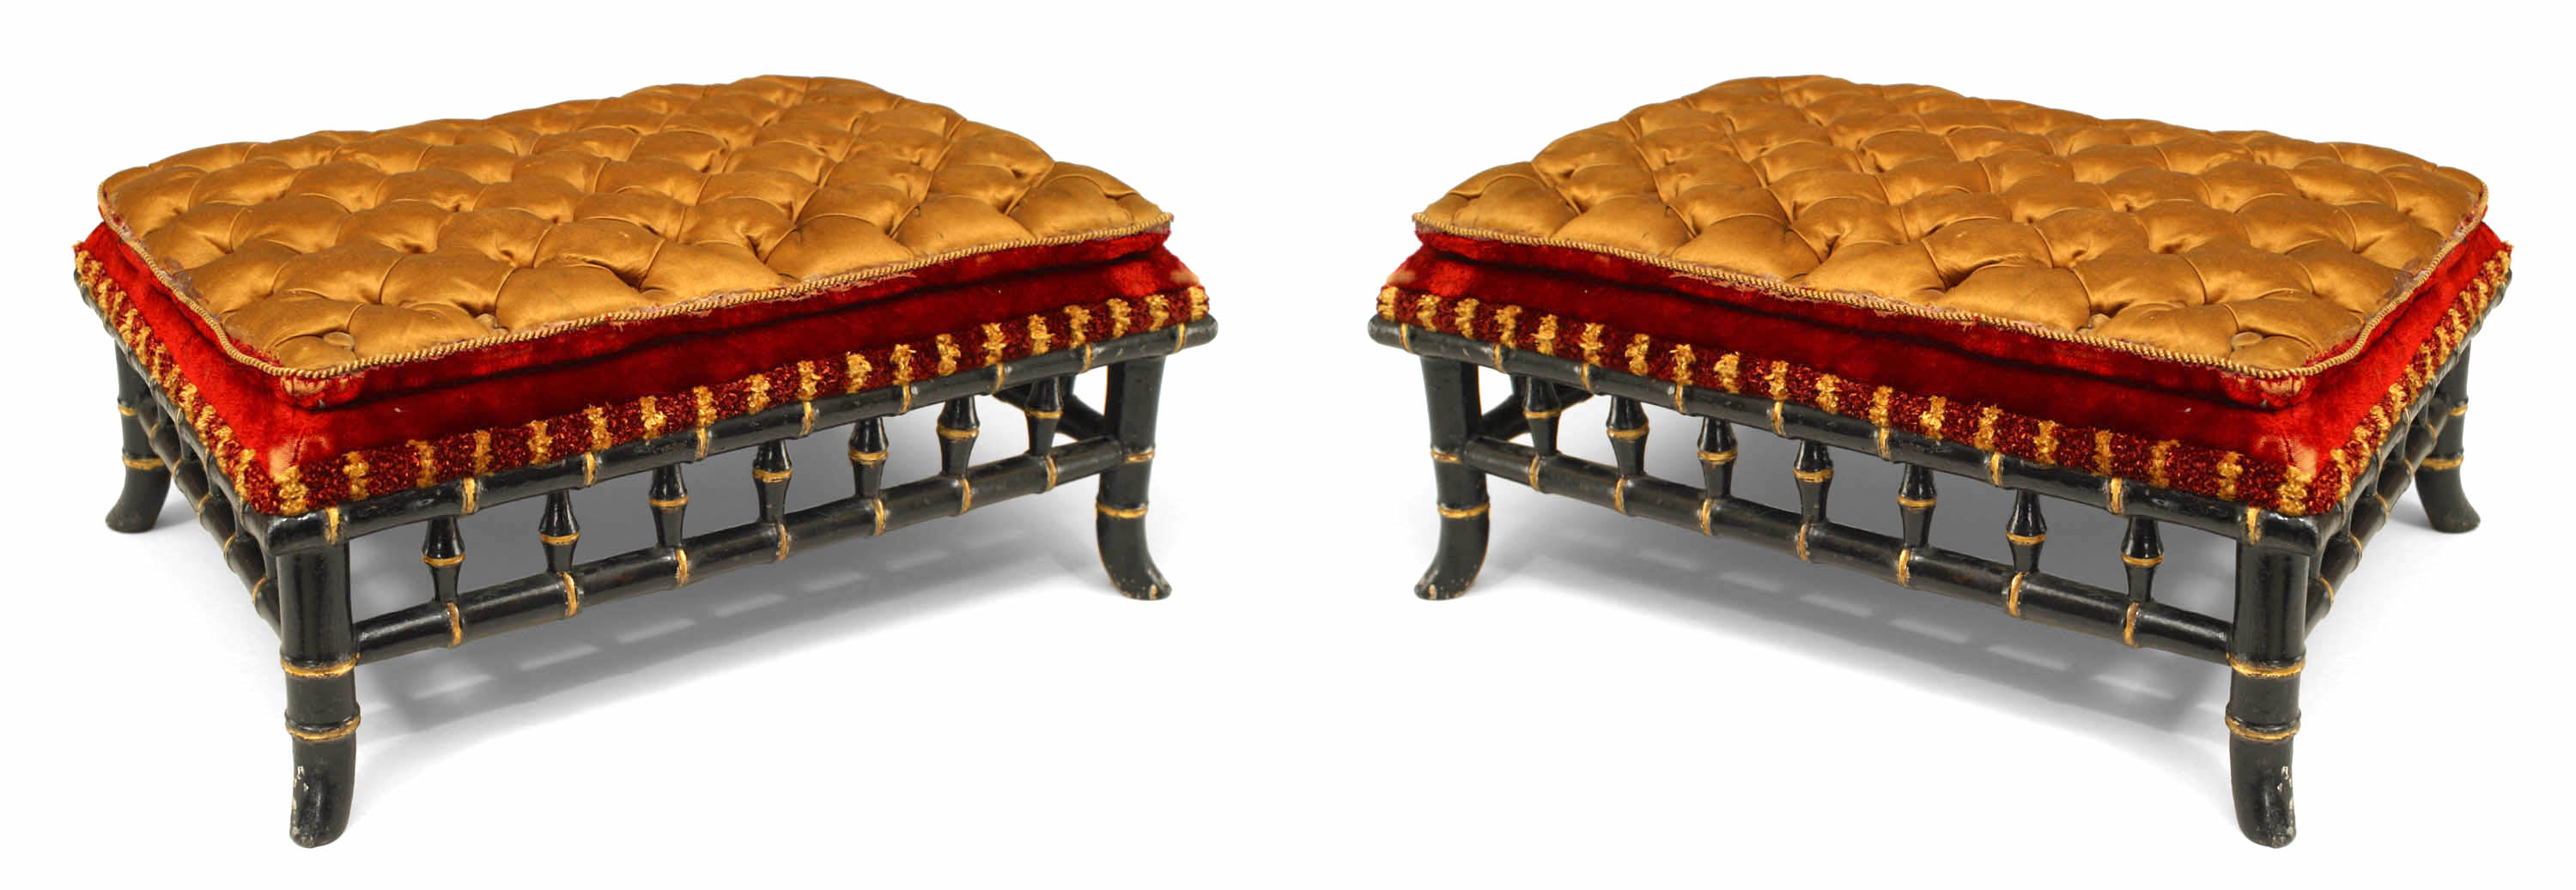 Terrific French Victorian Gold And Red Foot Stool 1 Newel Pdpeps Interior Chair Design Pdpepsorg